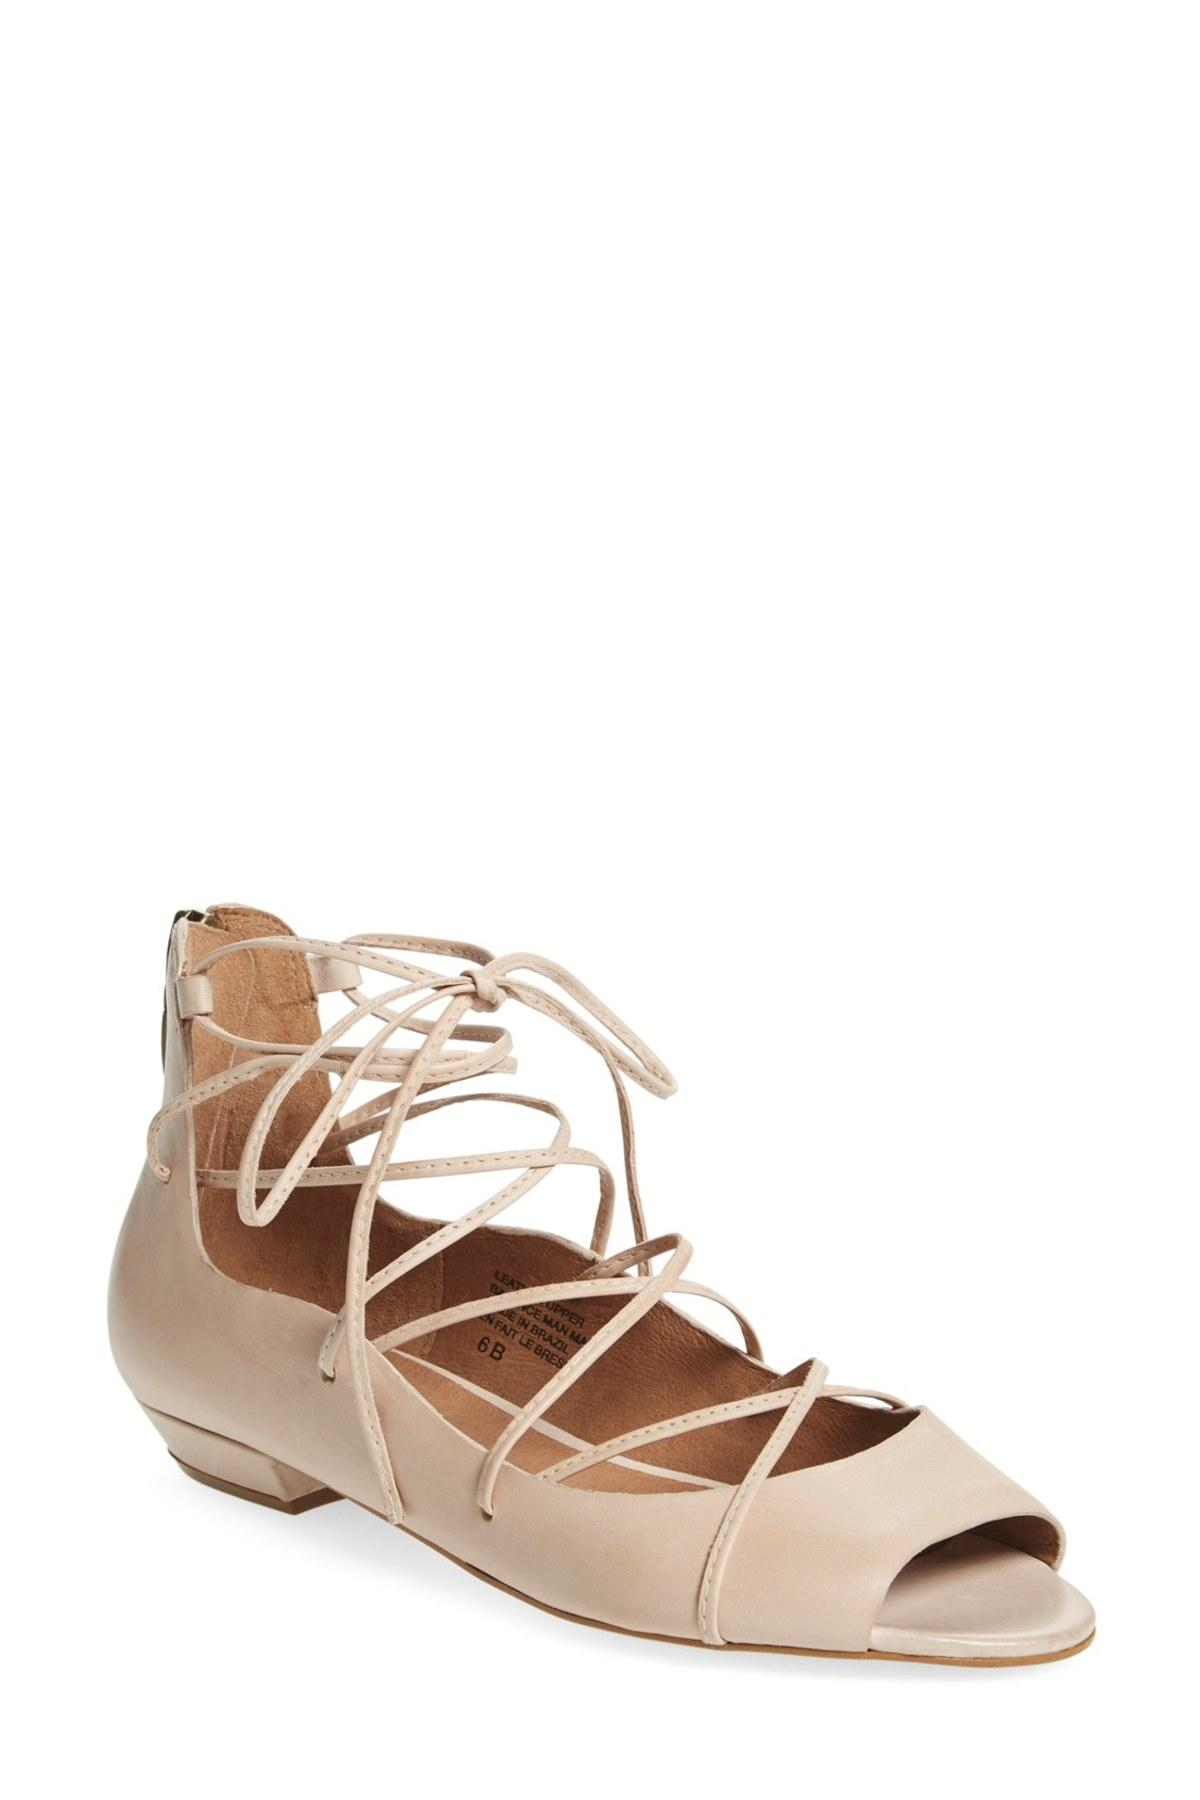 Seychelles Nude Leather Flats